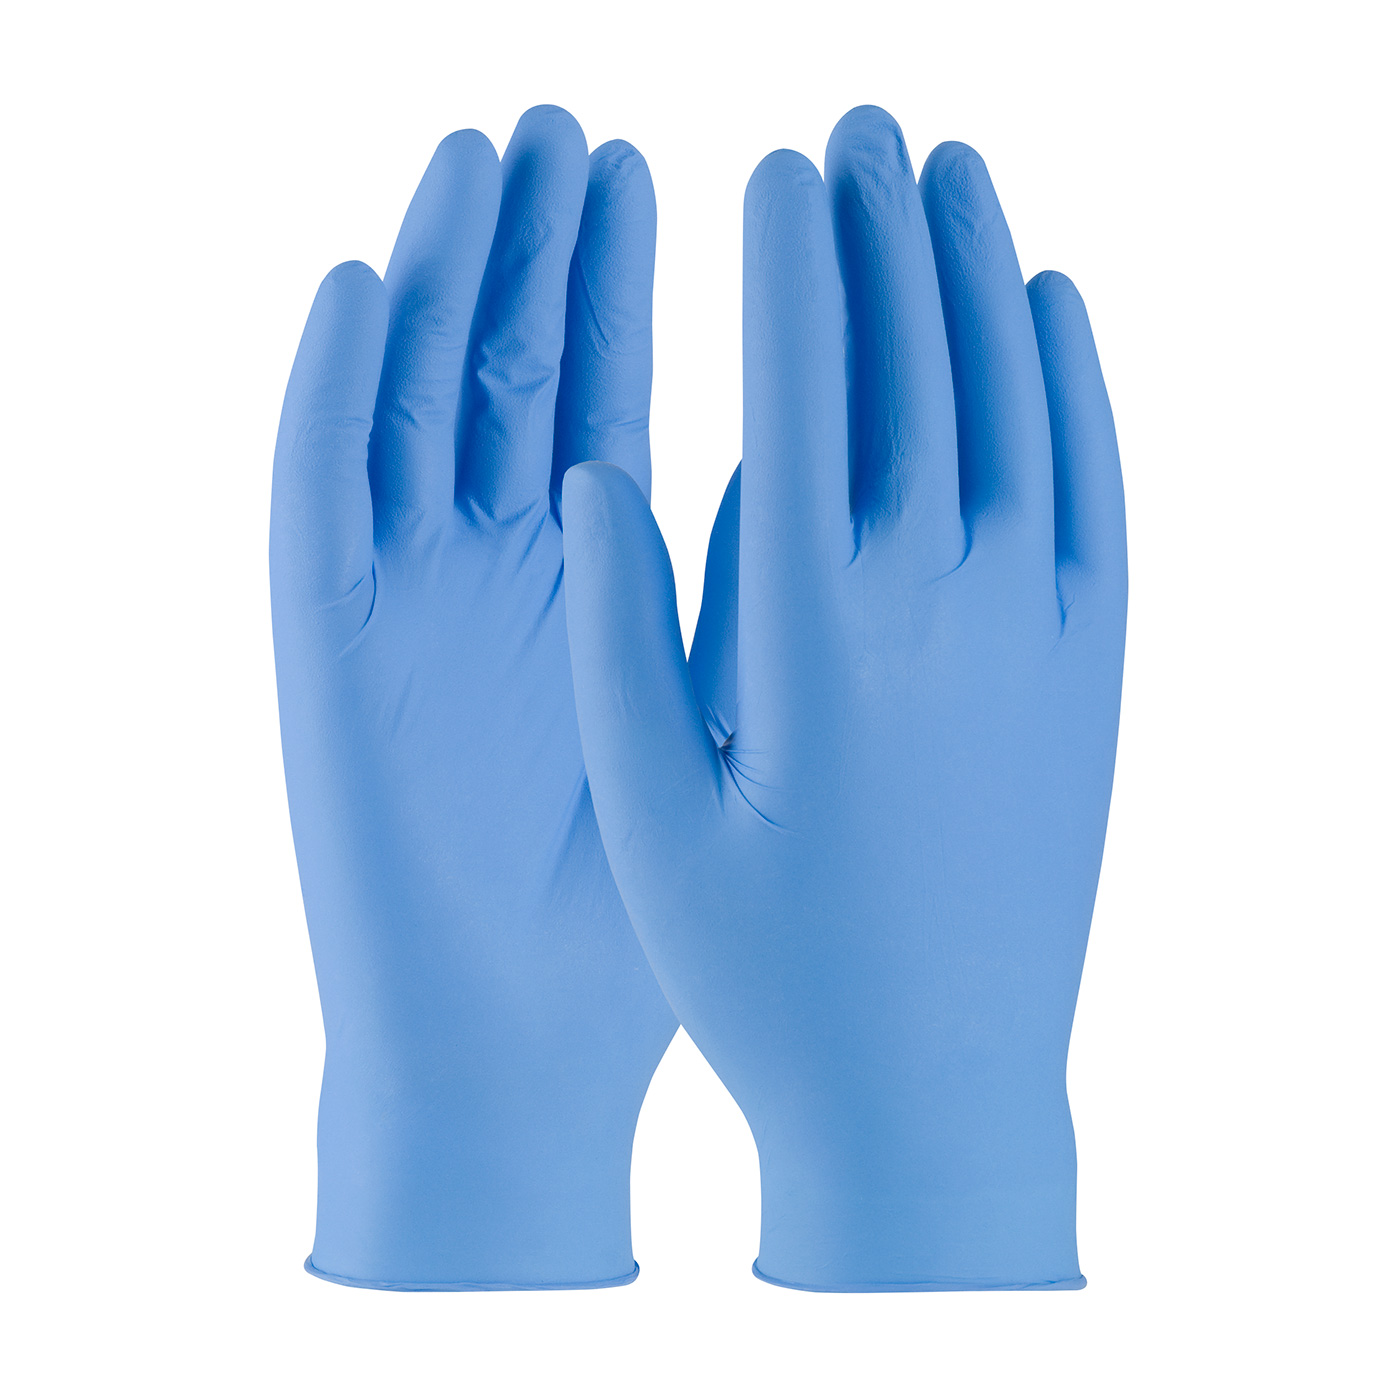 #63-532PF Ambi-dex® Axle Disposable Nitrile Glove, Powder-Free with Textured Grip - 4 mil